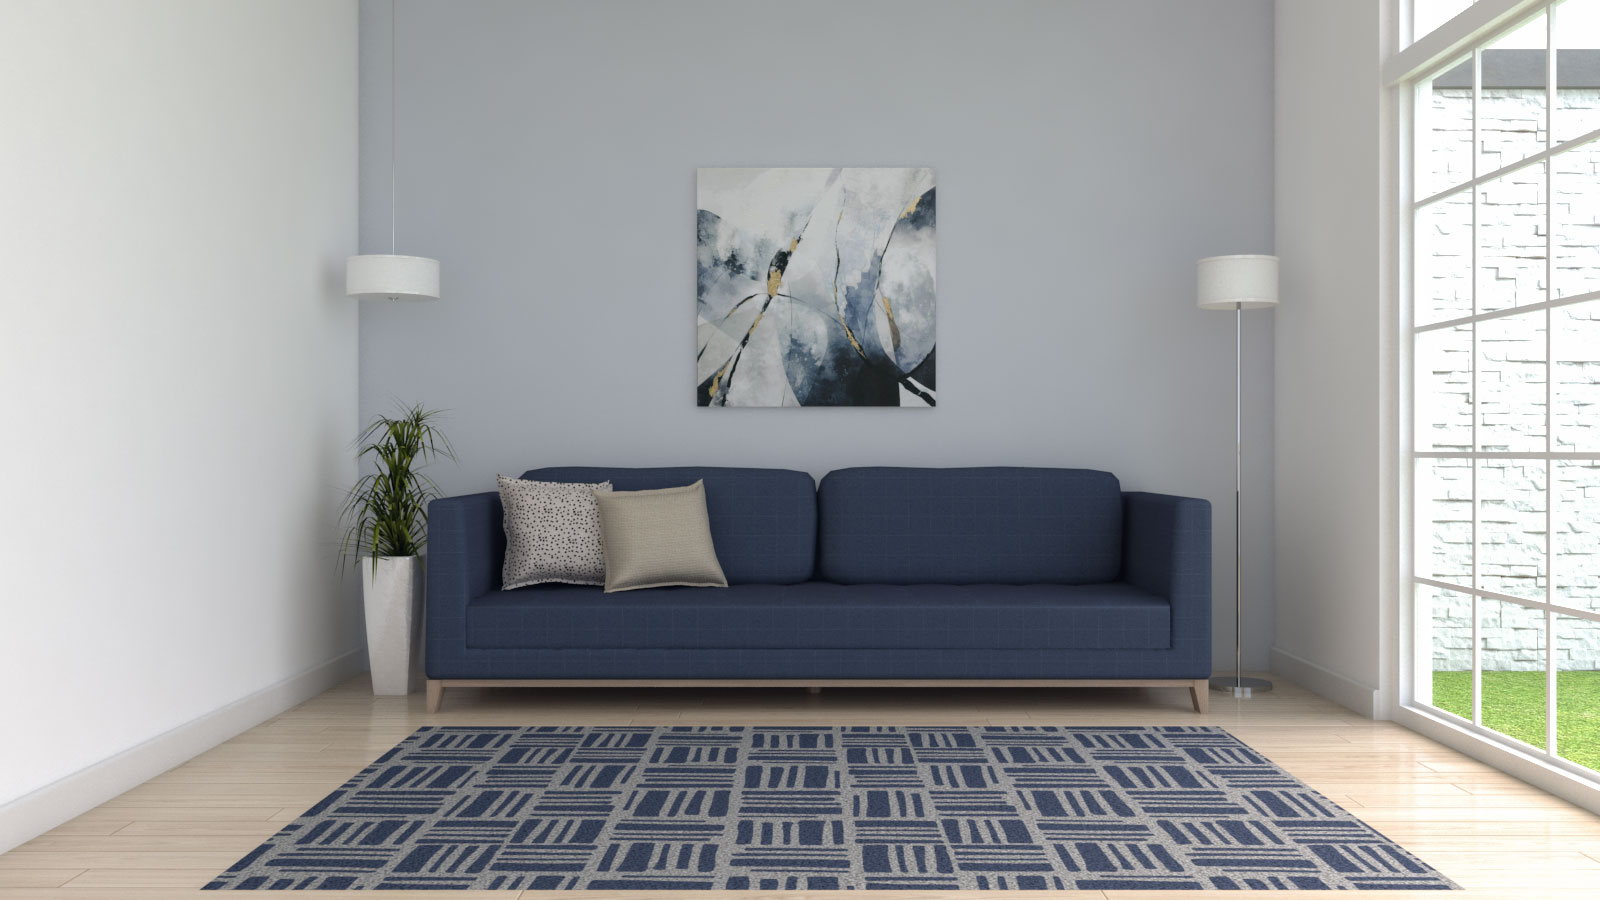 Blue and gray rug with blue couch